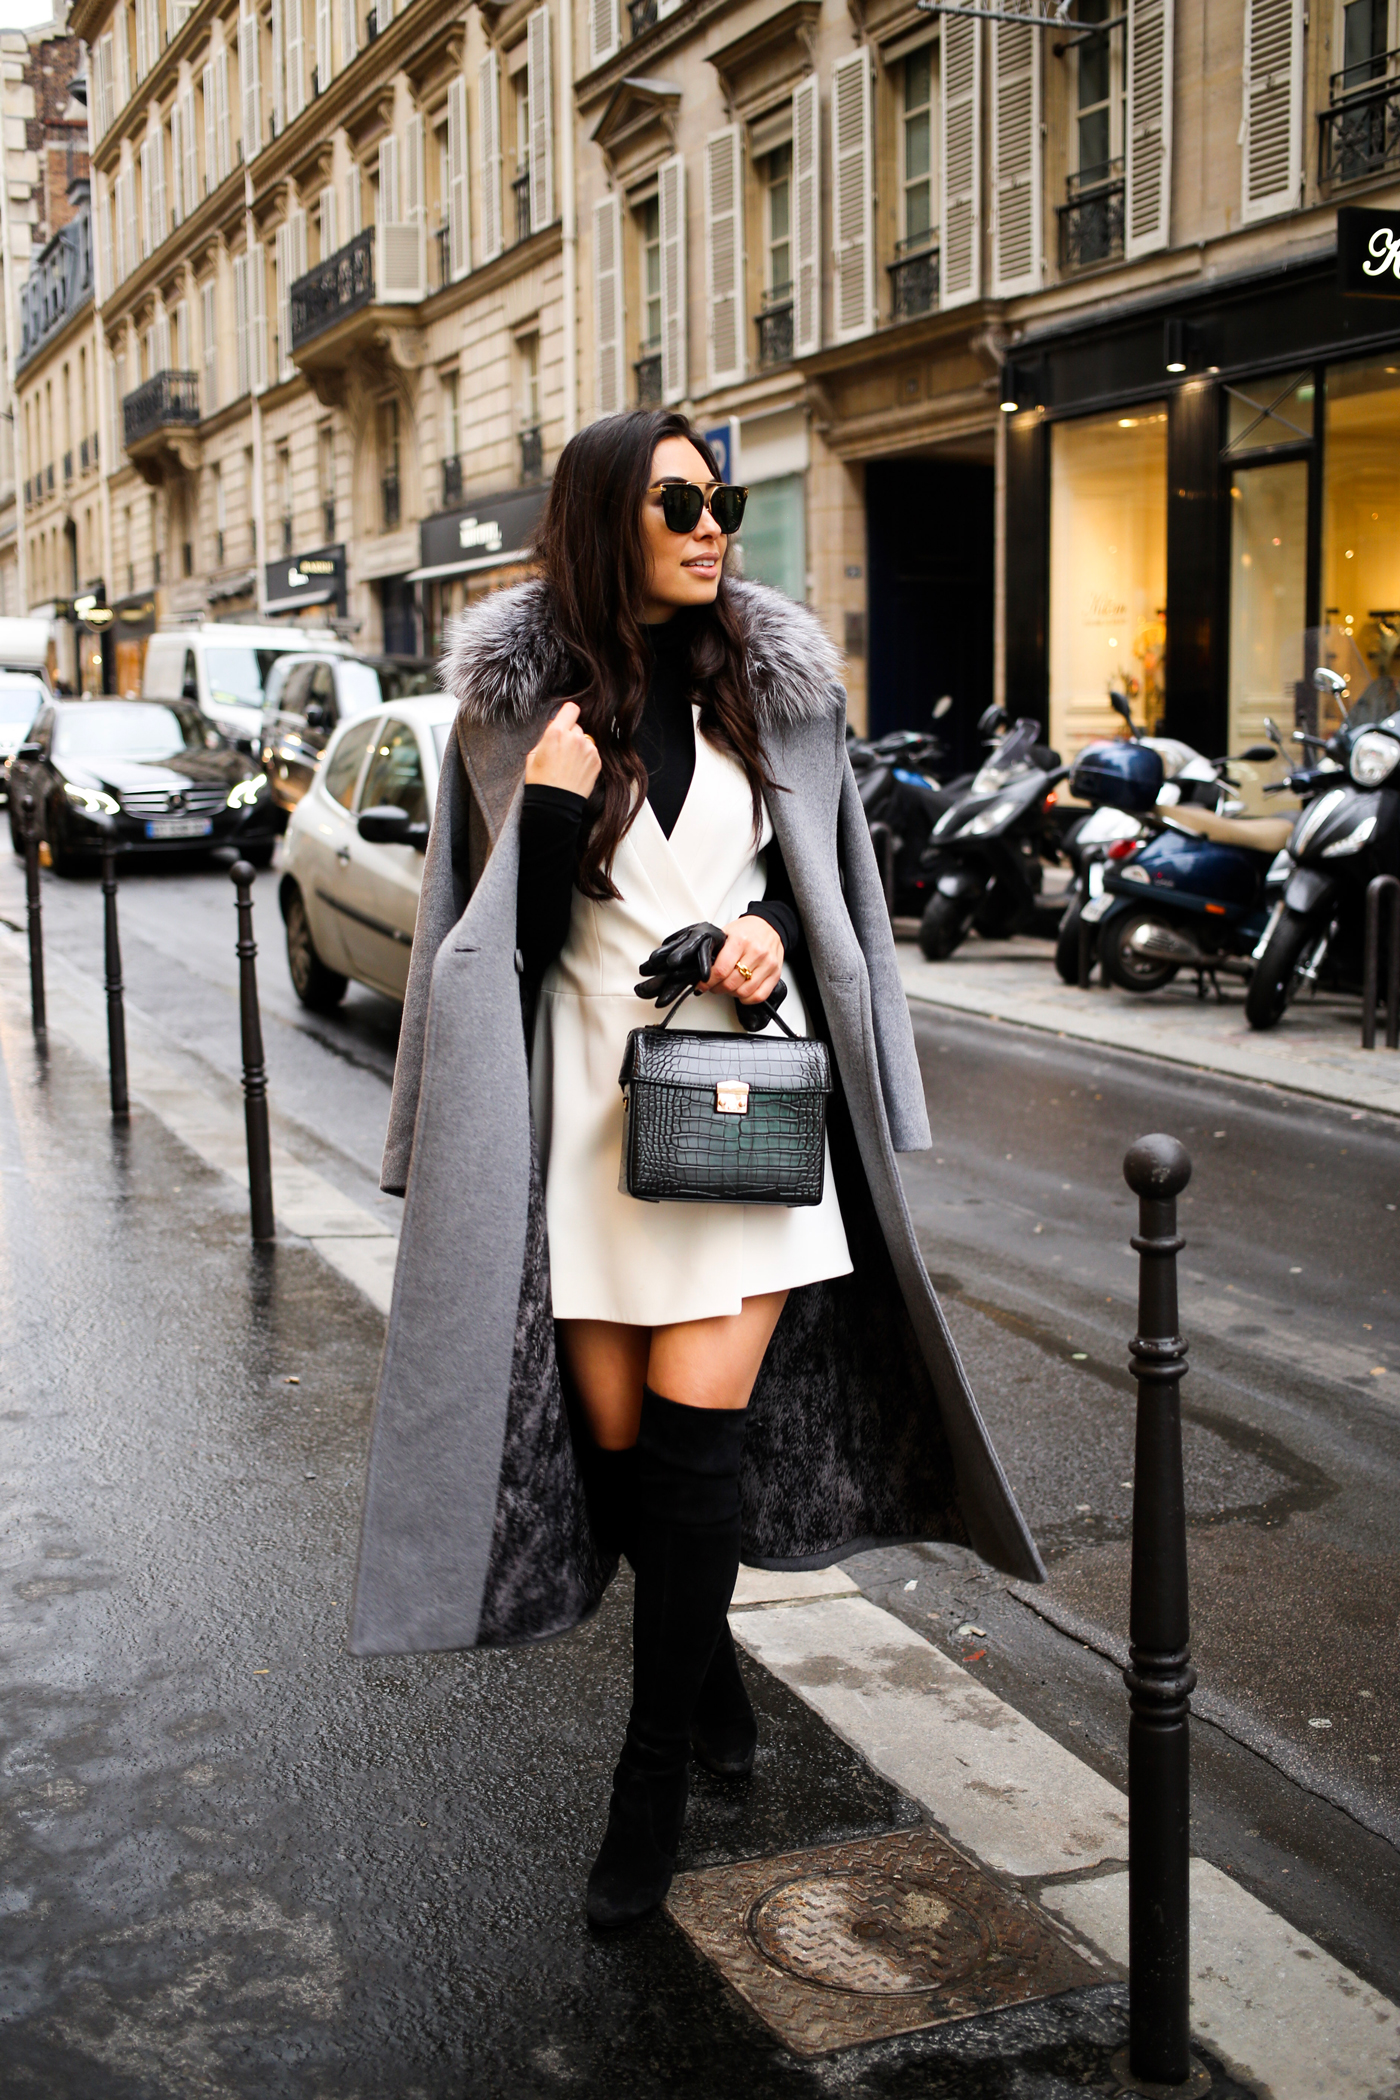 Winter in Paris - With Love From Kat